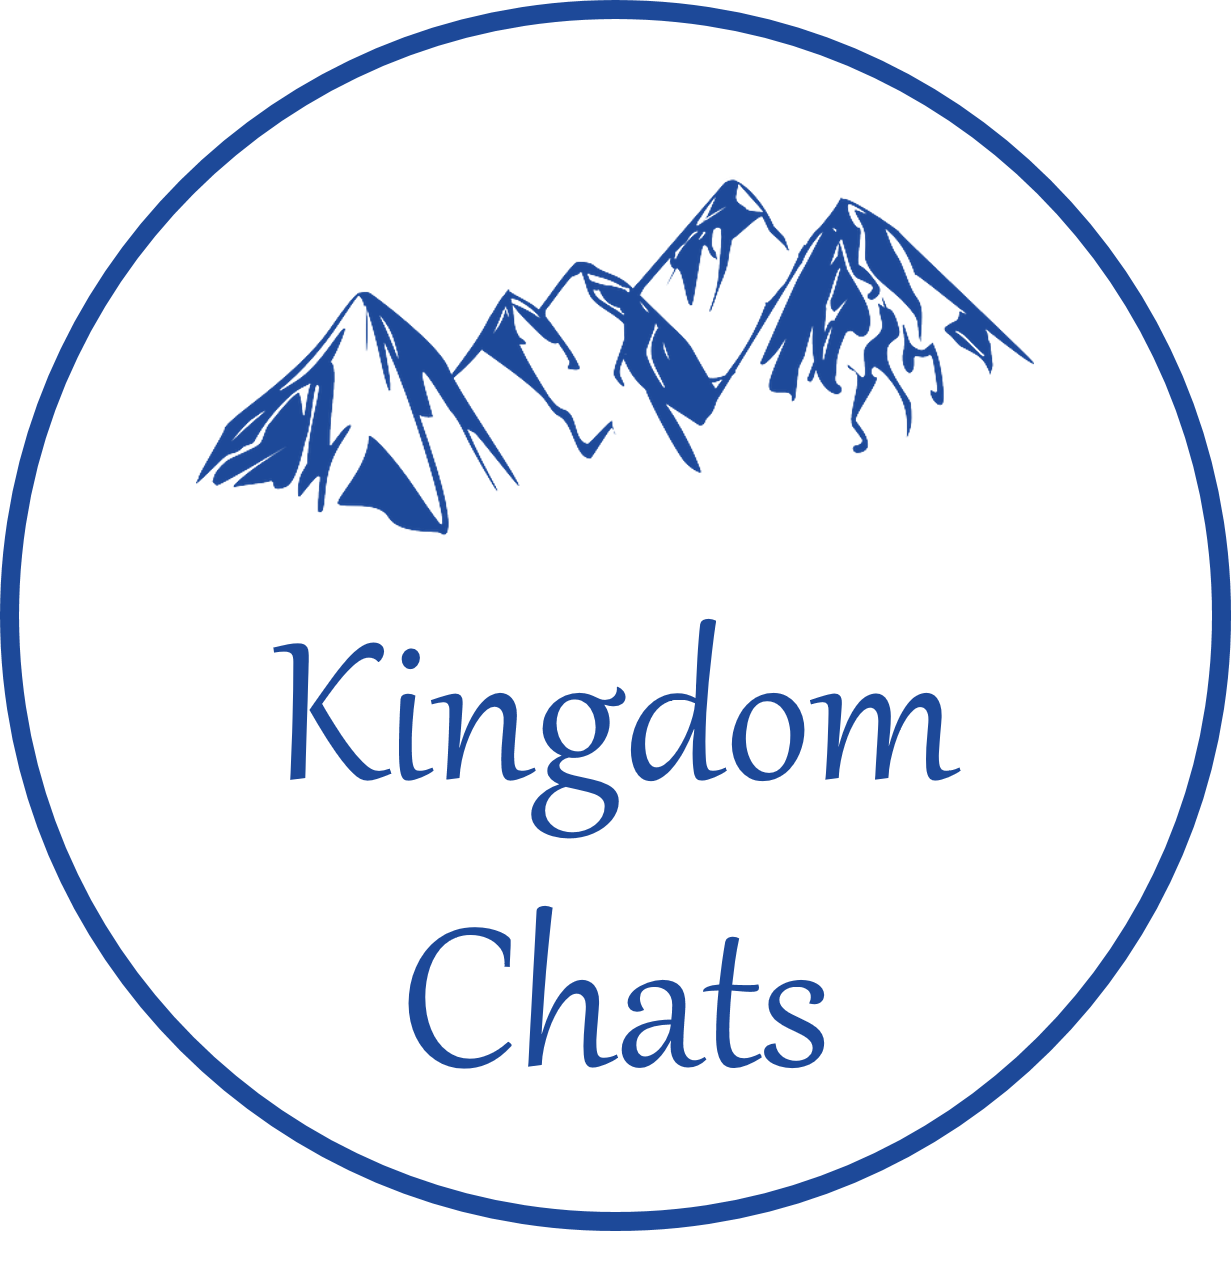 Kingdom Chats